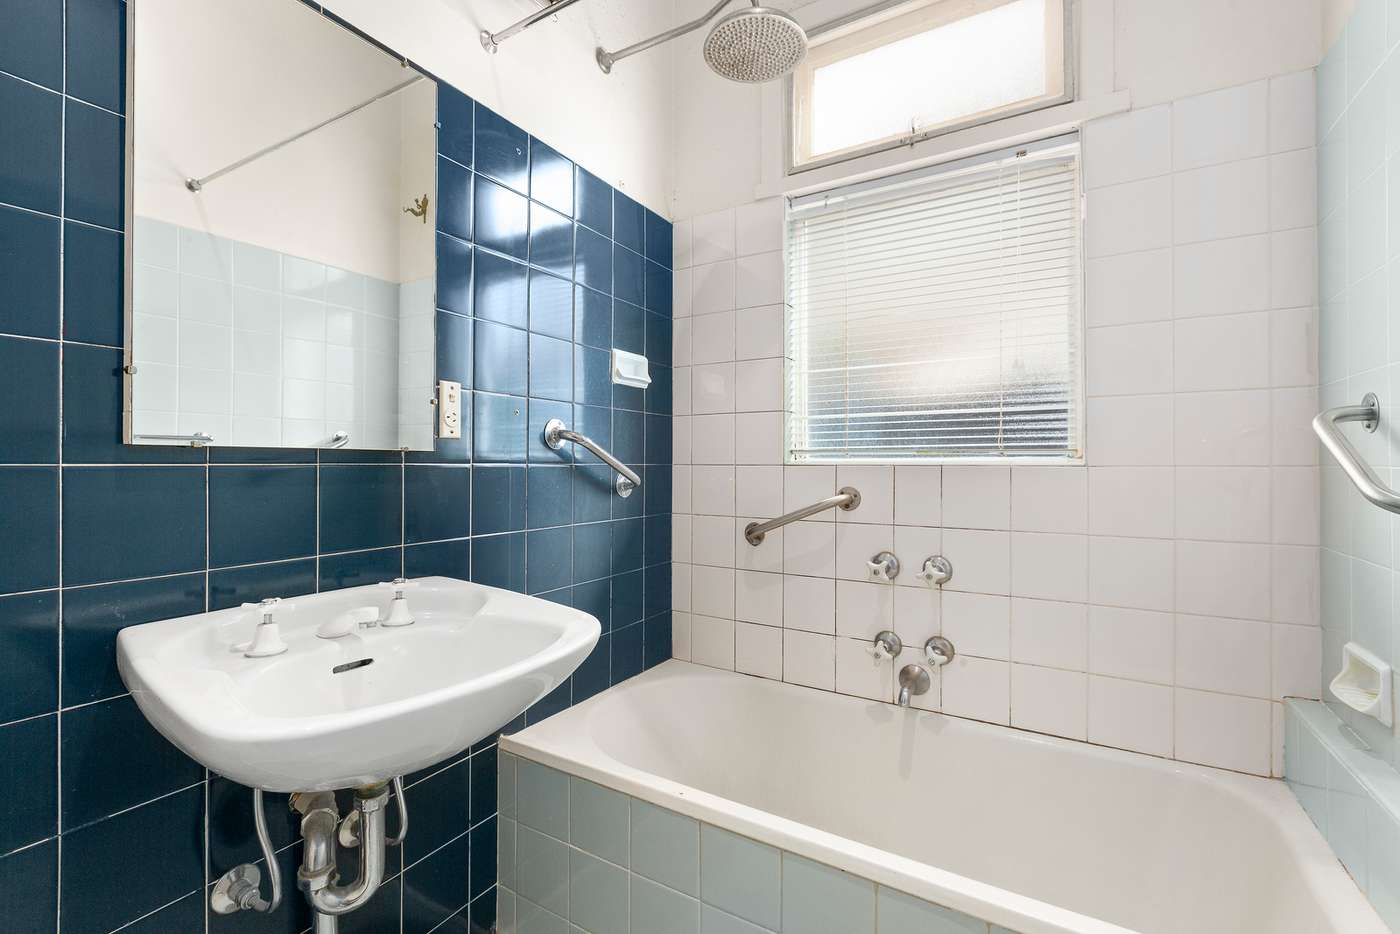 Fifth view of Homely house listing, 10 Imbros Street, Hampton VIC 3188